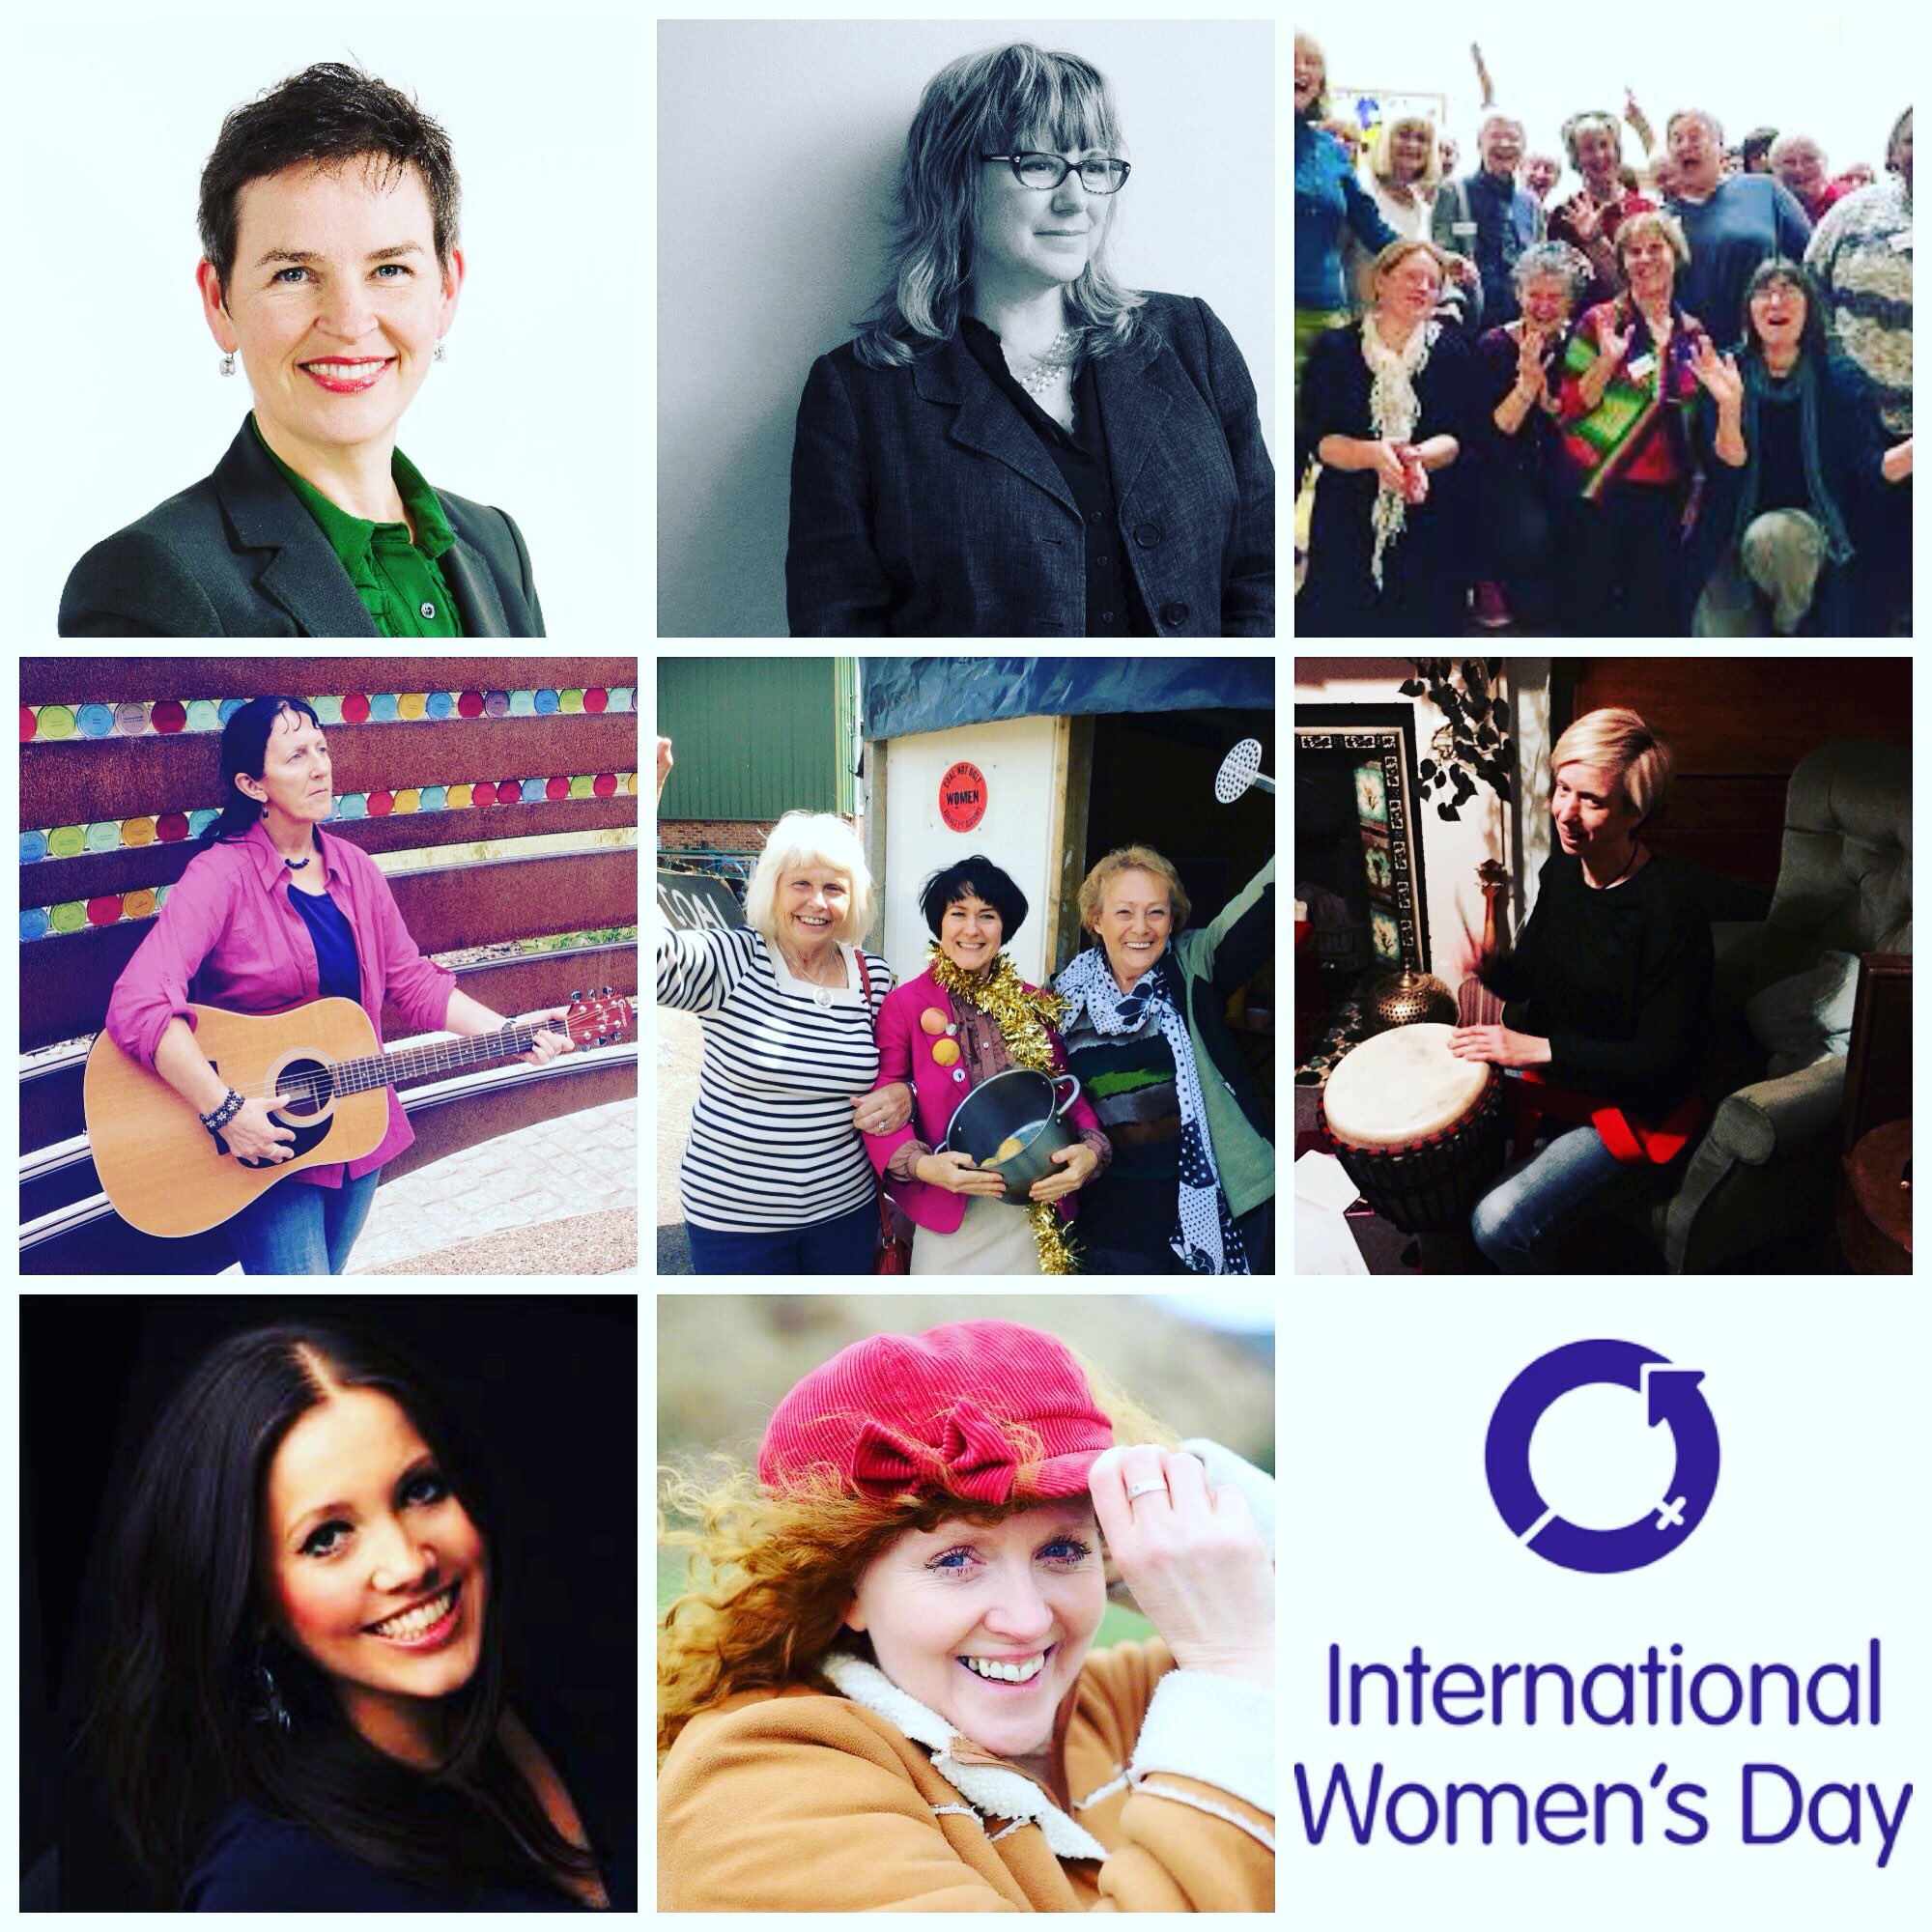 Mining Museum IWD day combined photo